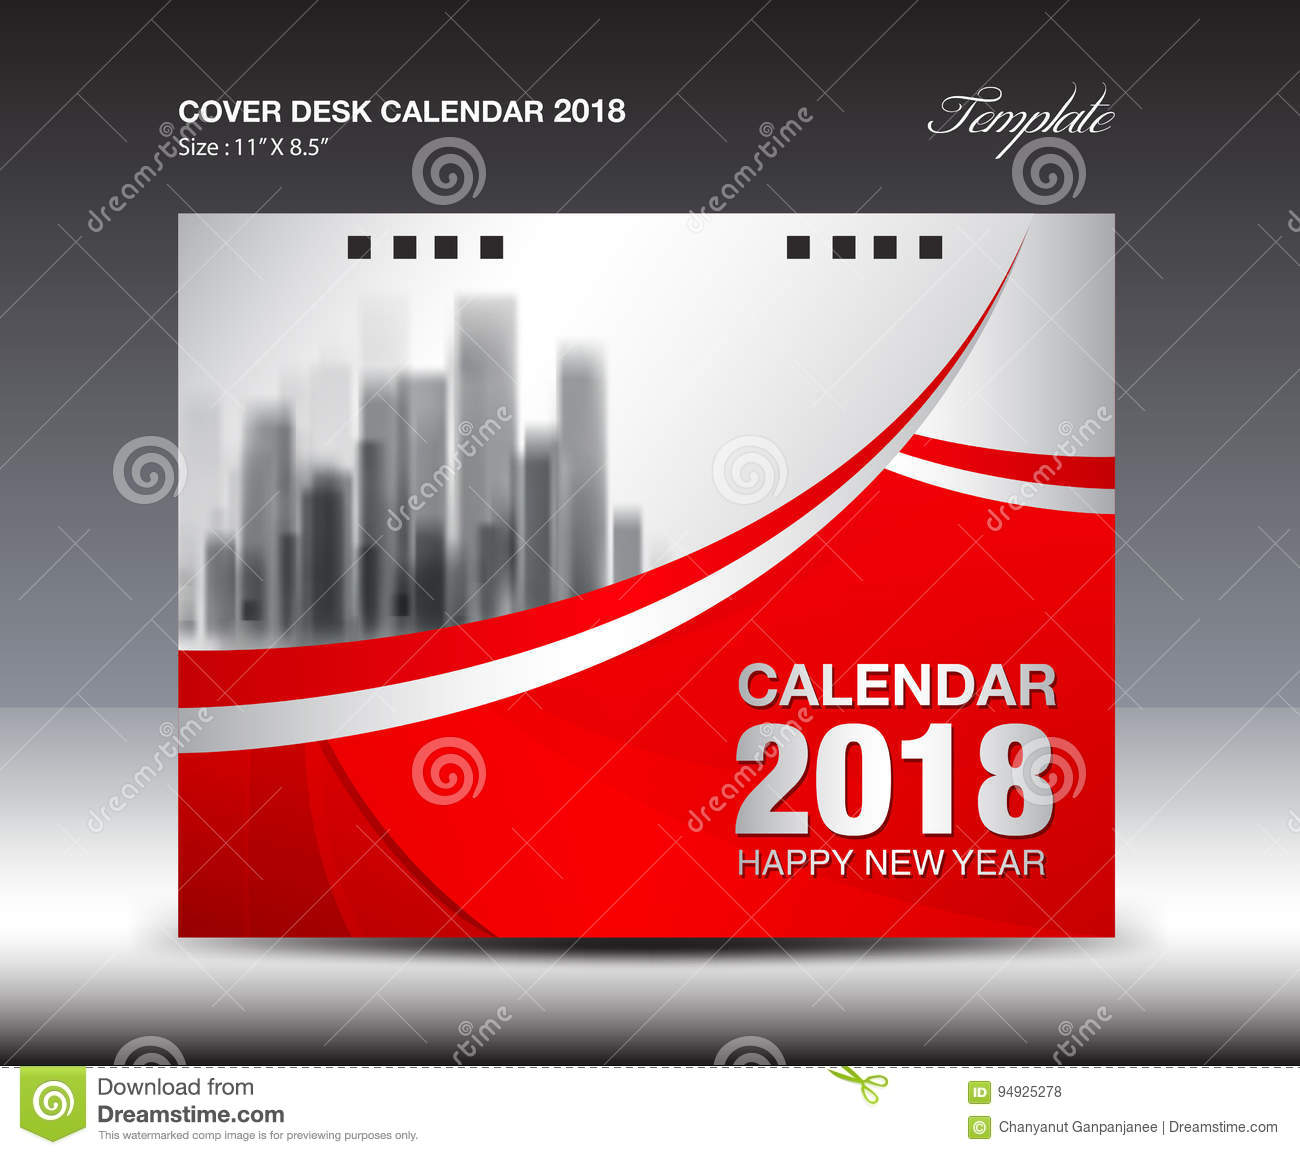 Calendar Cover : Red cover desk calendar year template design stock